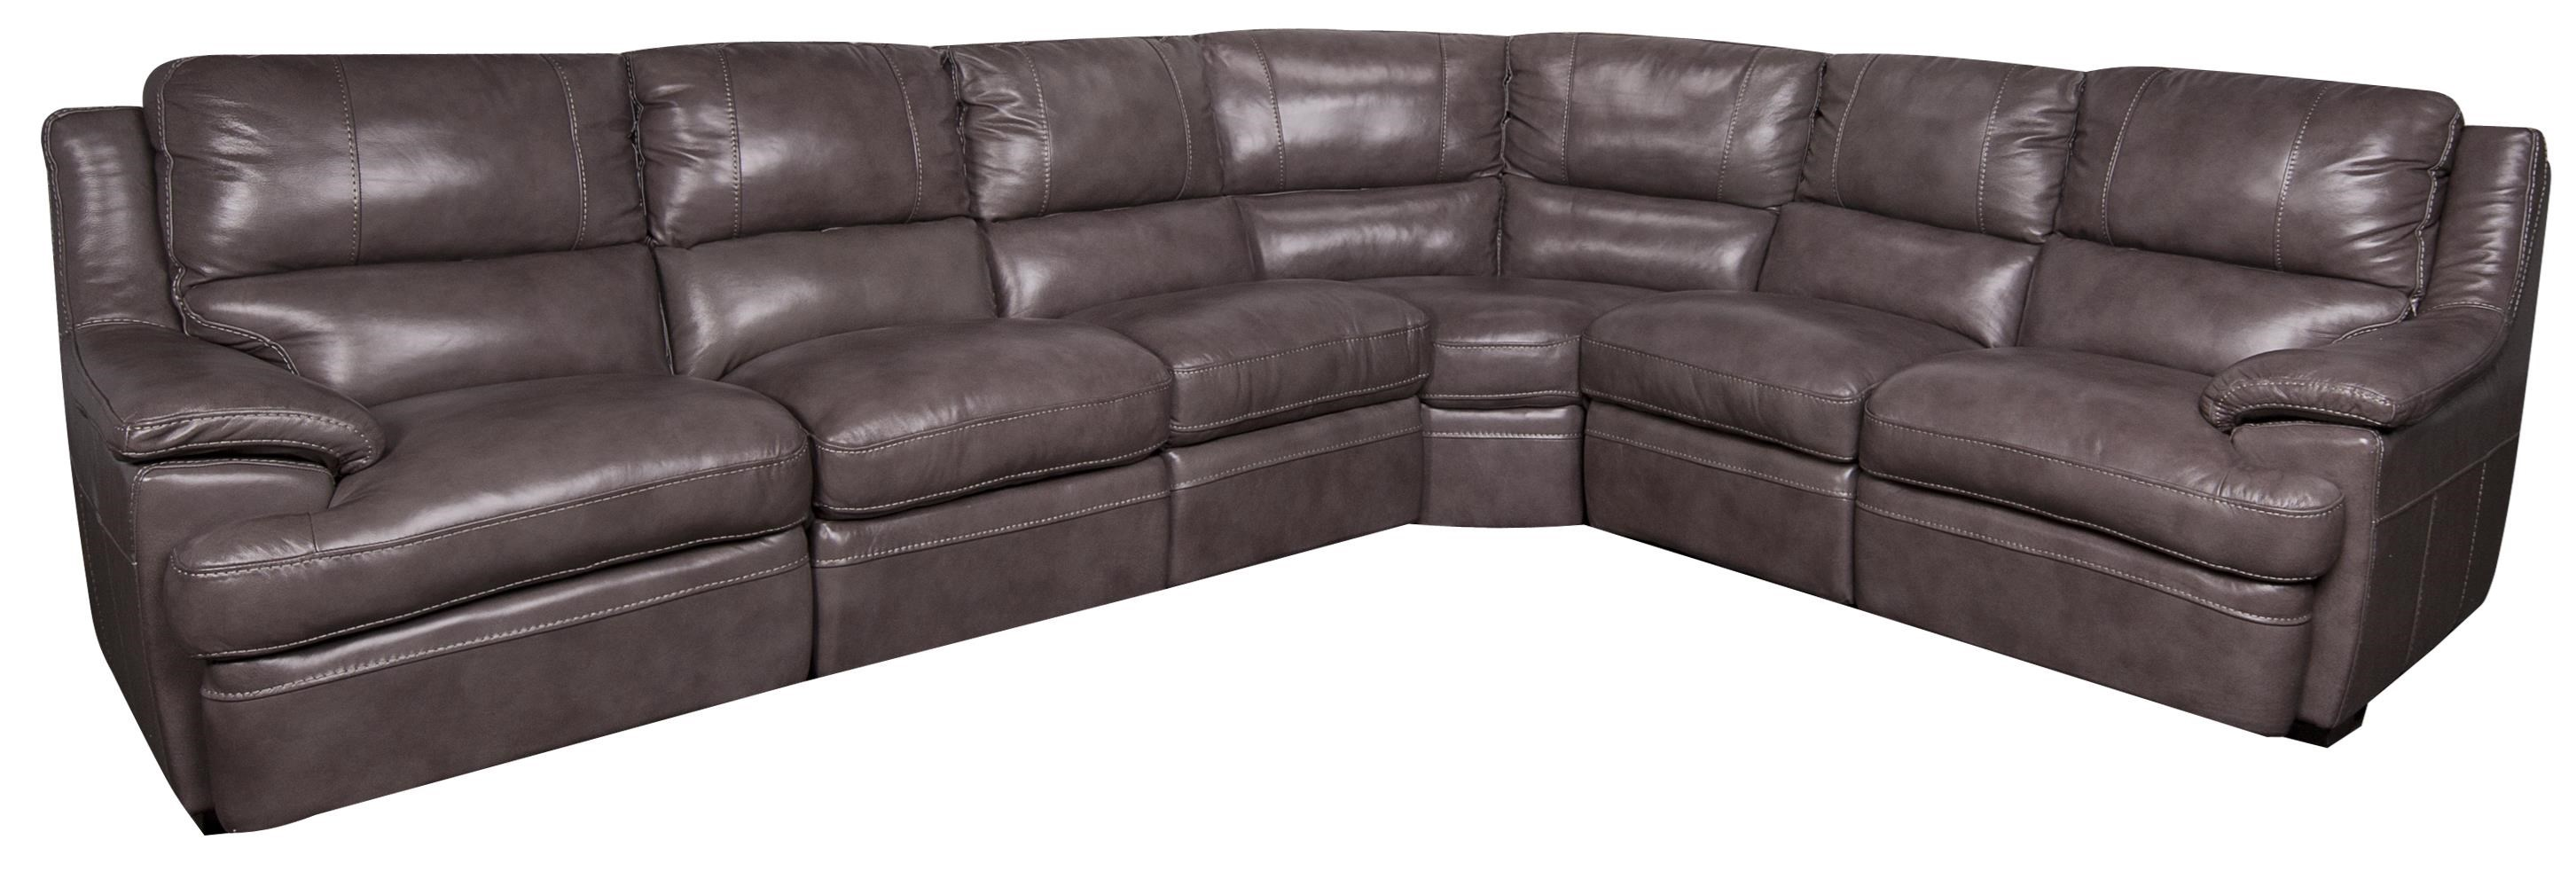 Morris Home Furnishings Zane Zane Leather-Match* 6-Piece Sectional - Item Number: 134834597